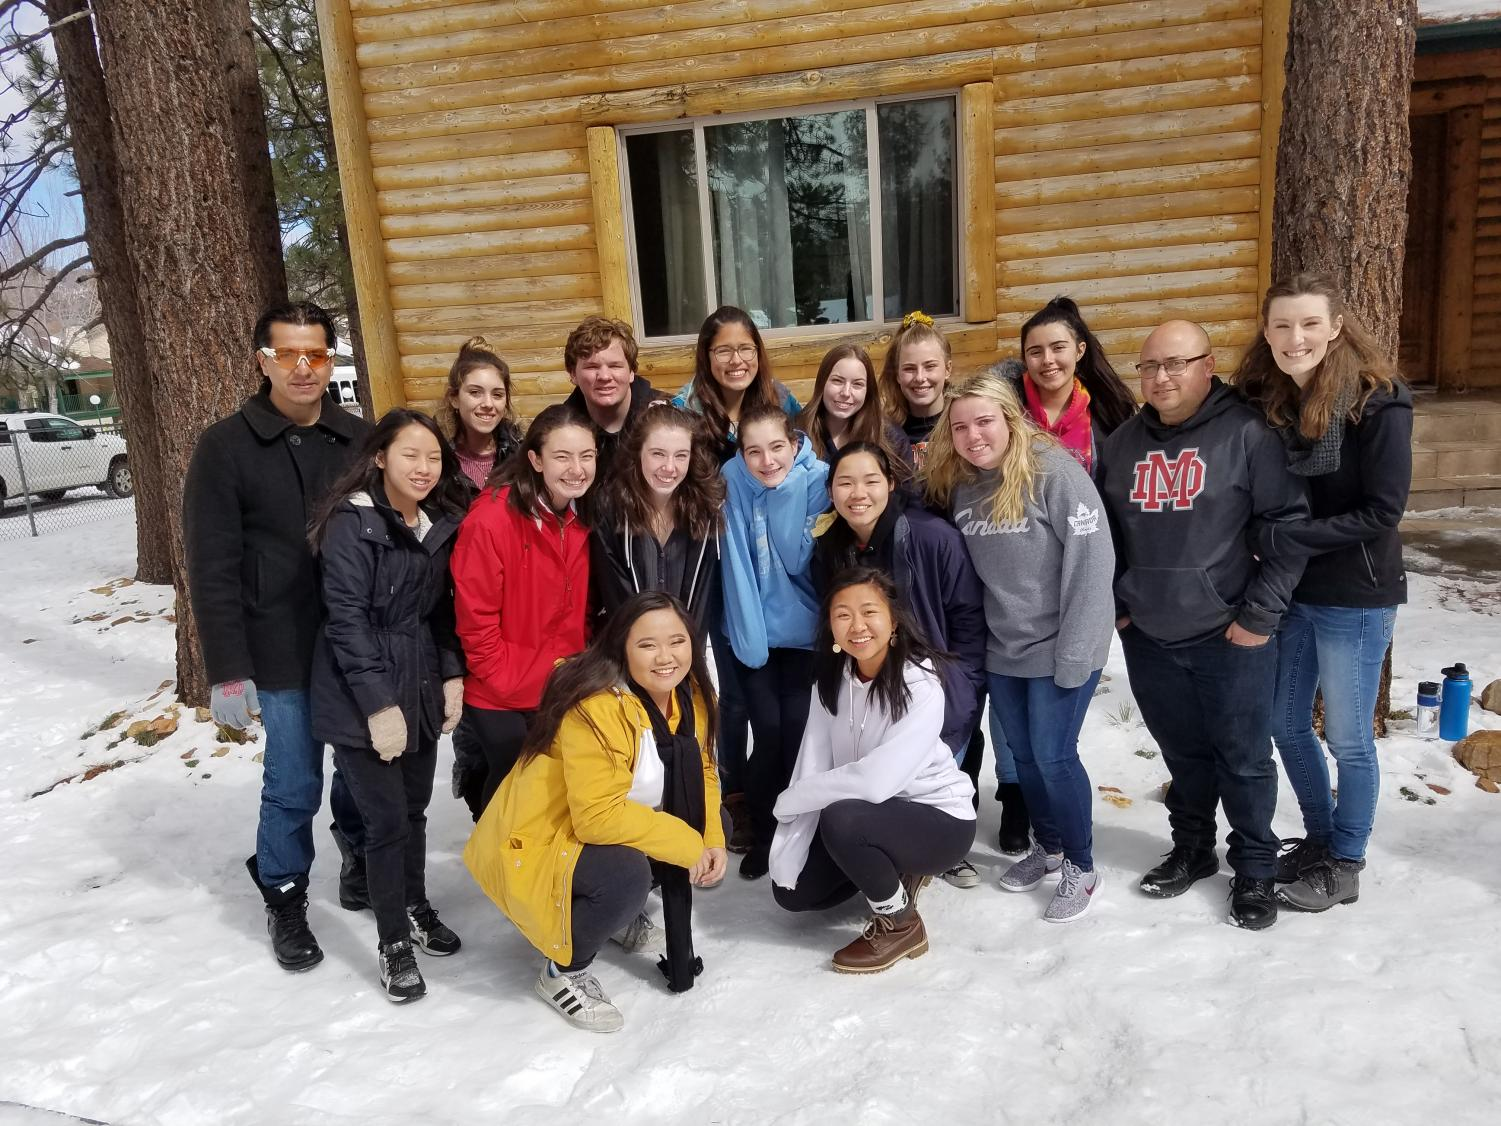 SMILES ALL AROUND: Mater Dei students pose in front of their cabin.